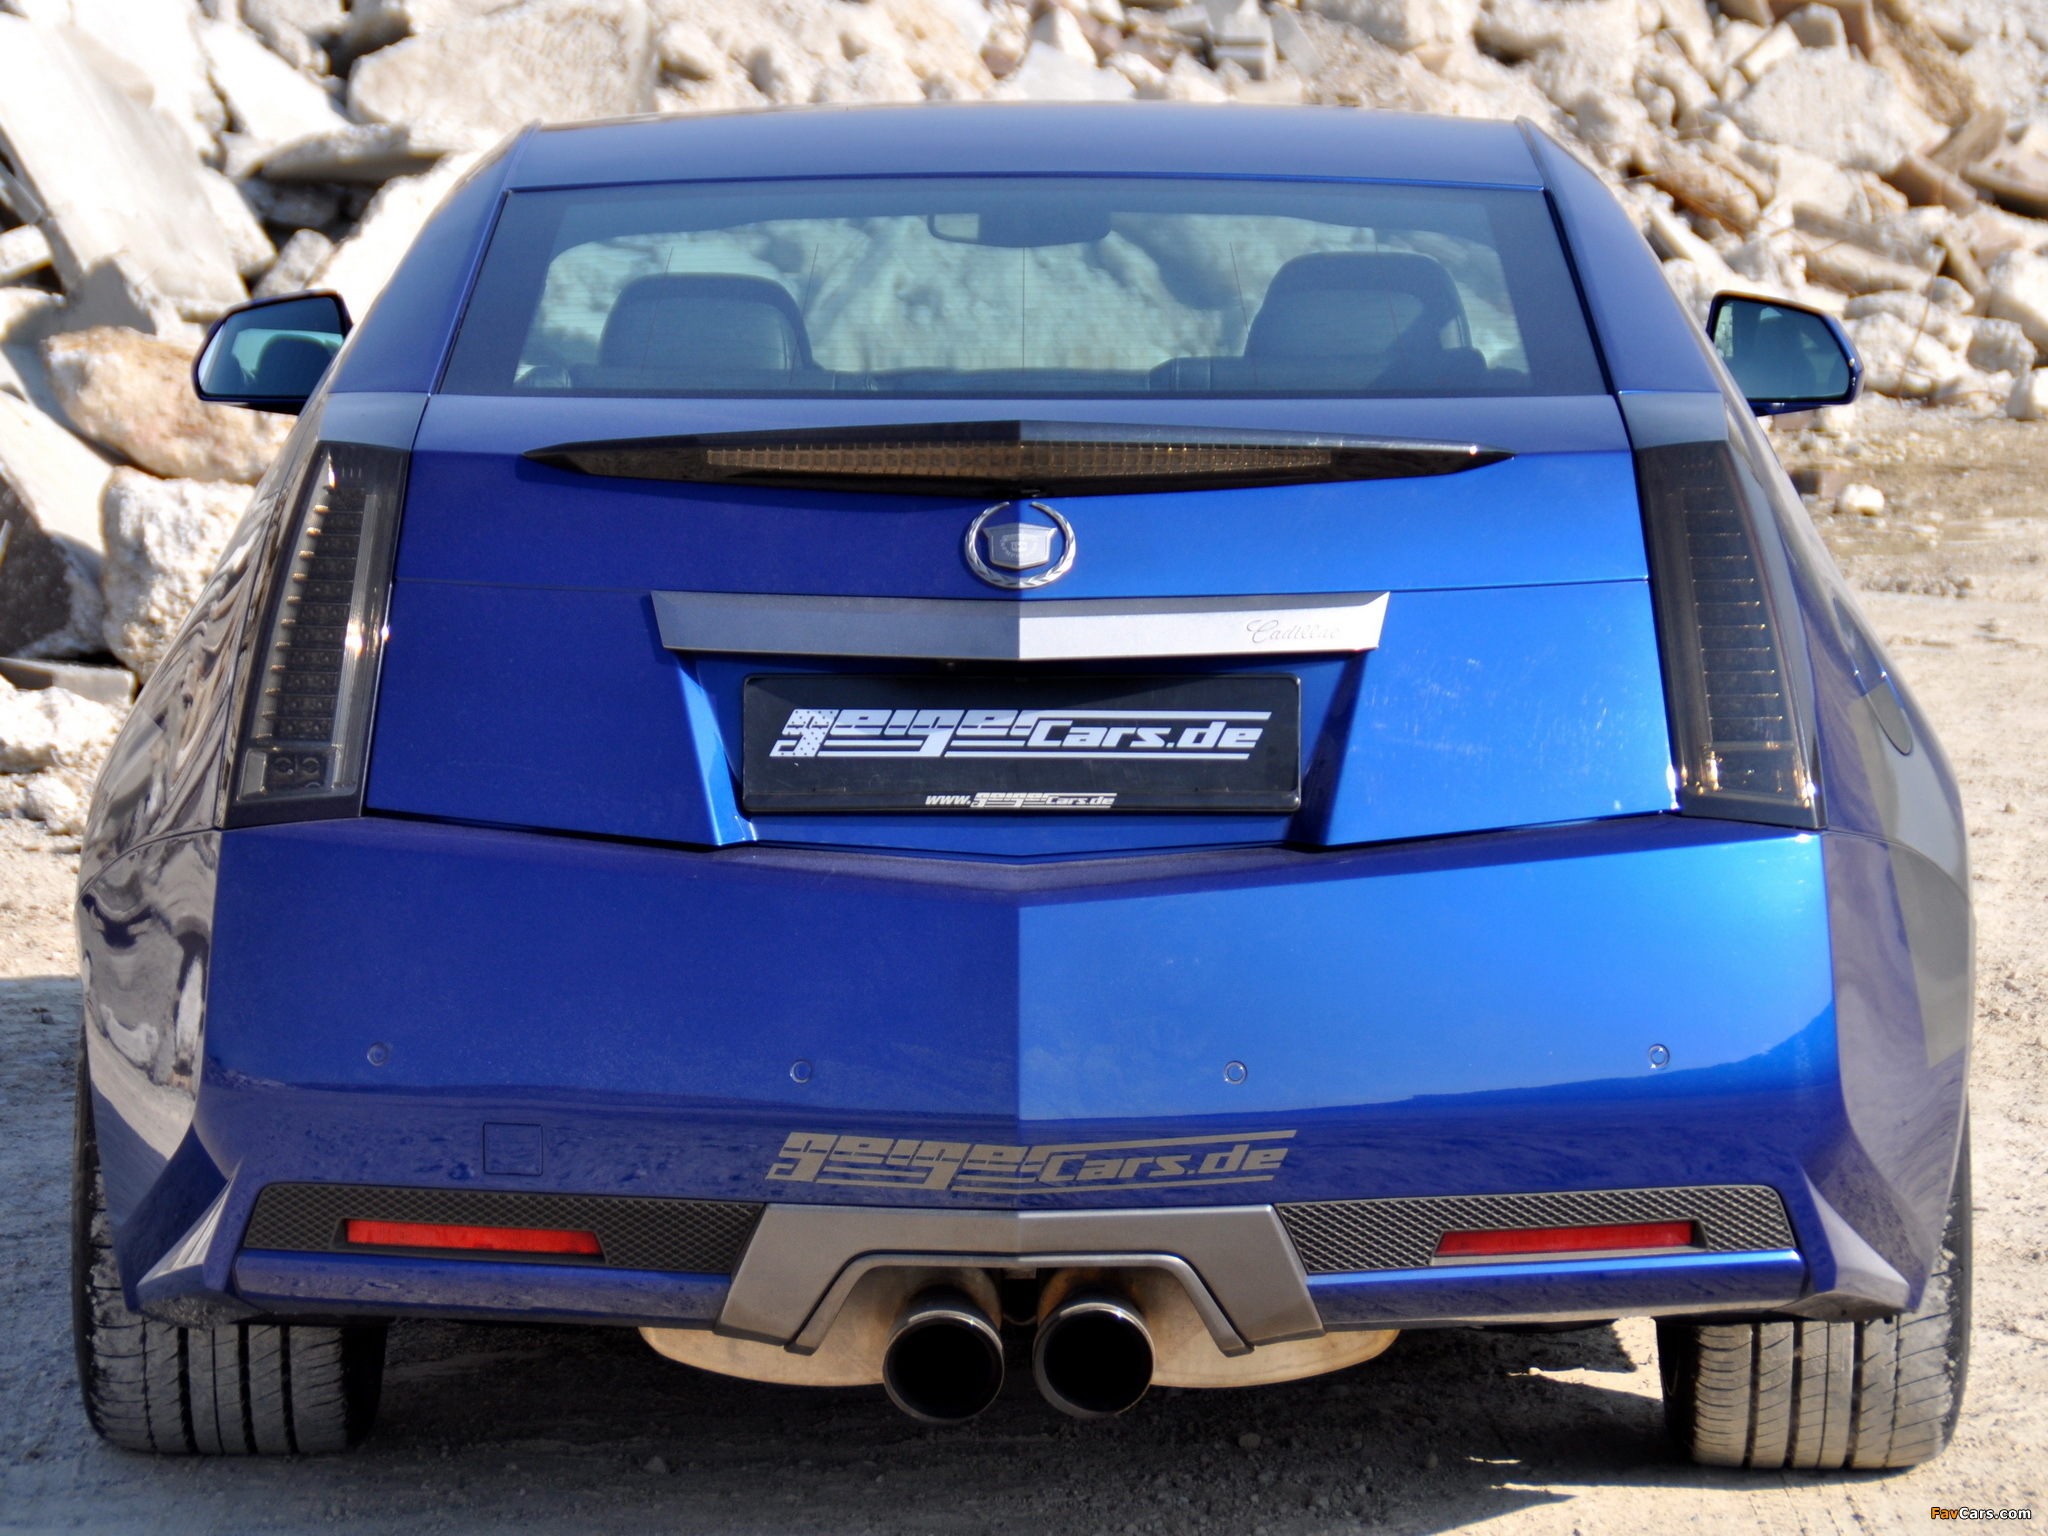 Geiger Cadillac Cts V Coupe Blue Brute 2011 Wallpapers 2048x1536